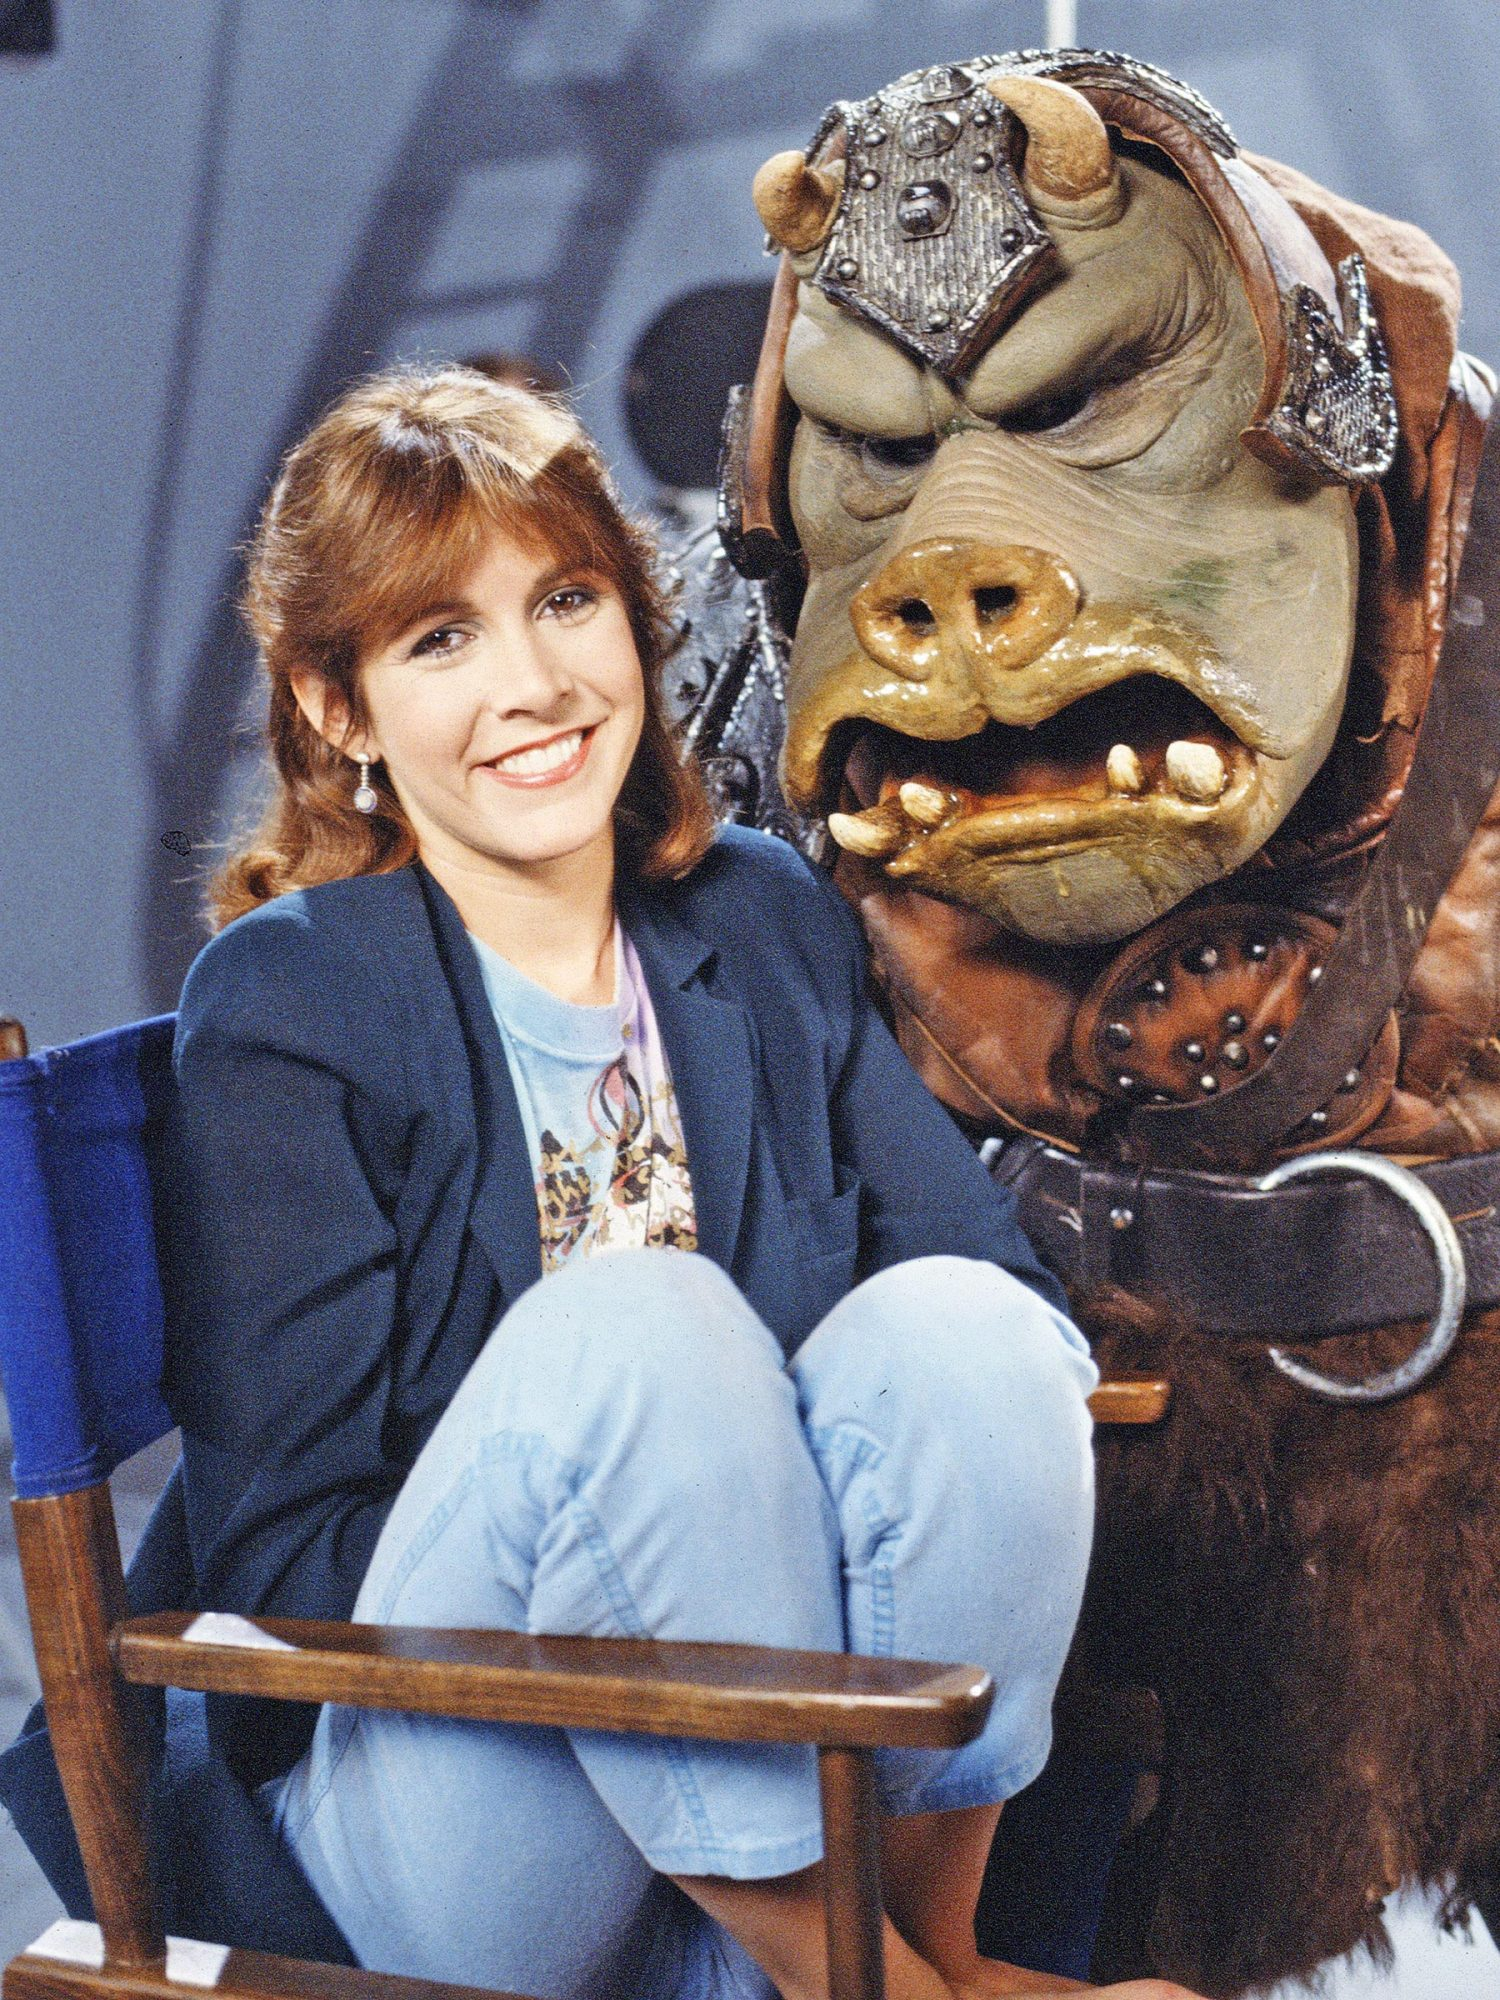 Carrie Fisher In 'Classic Creatures: Return Of The Jedi'